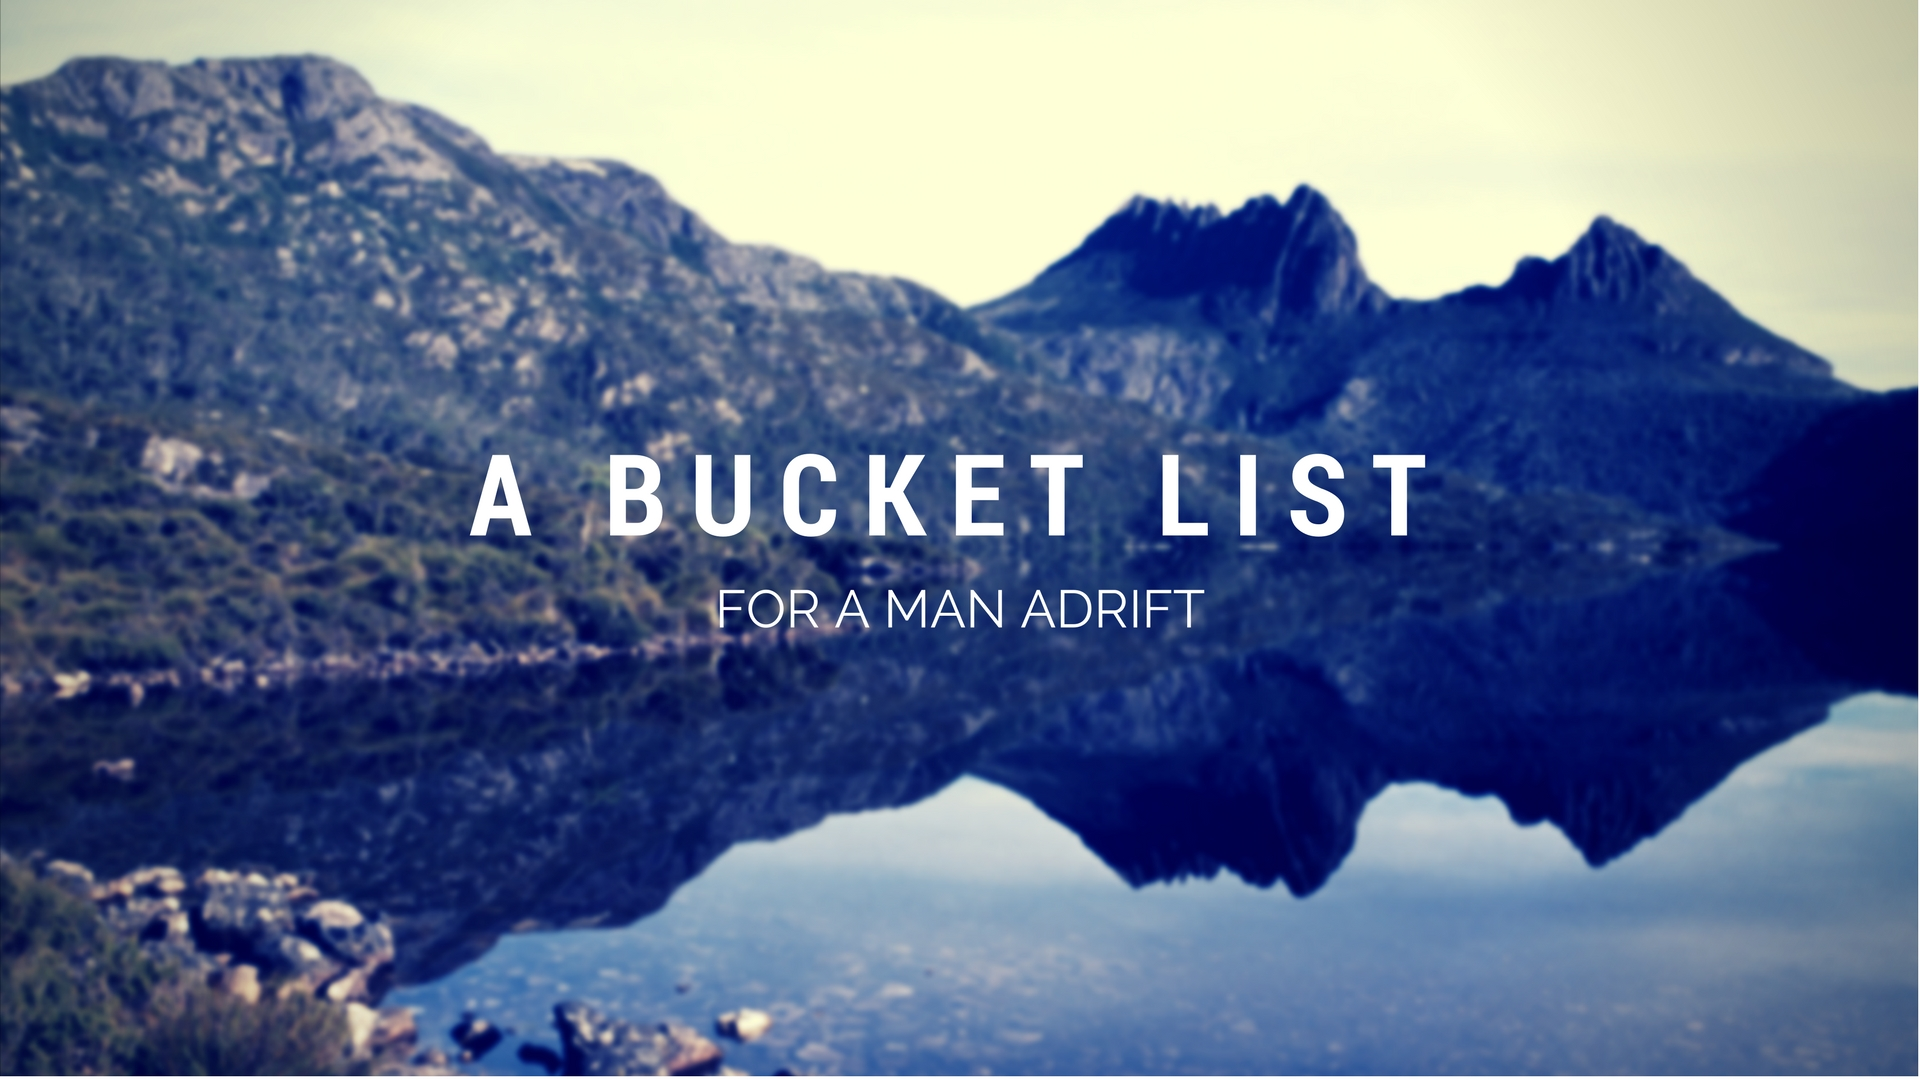 A Bucket List for a Man Adrift